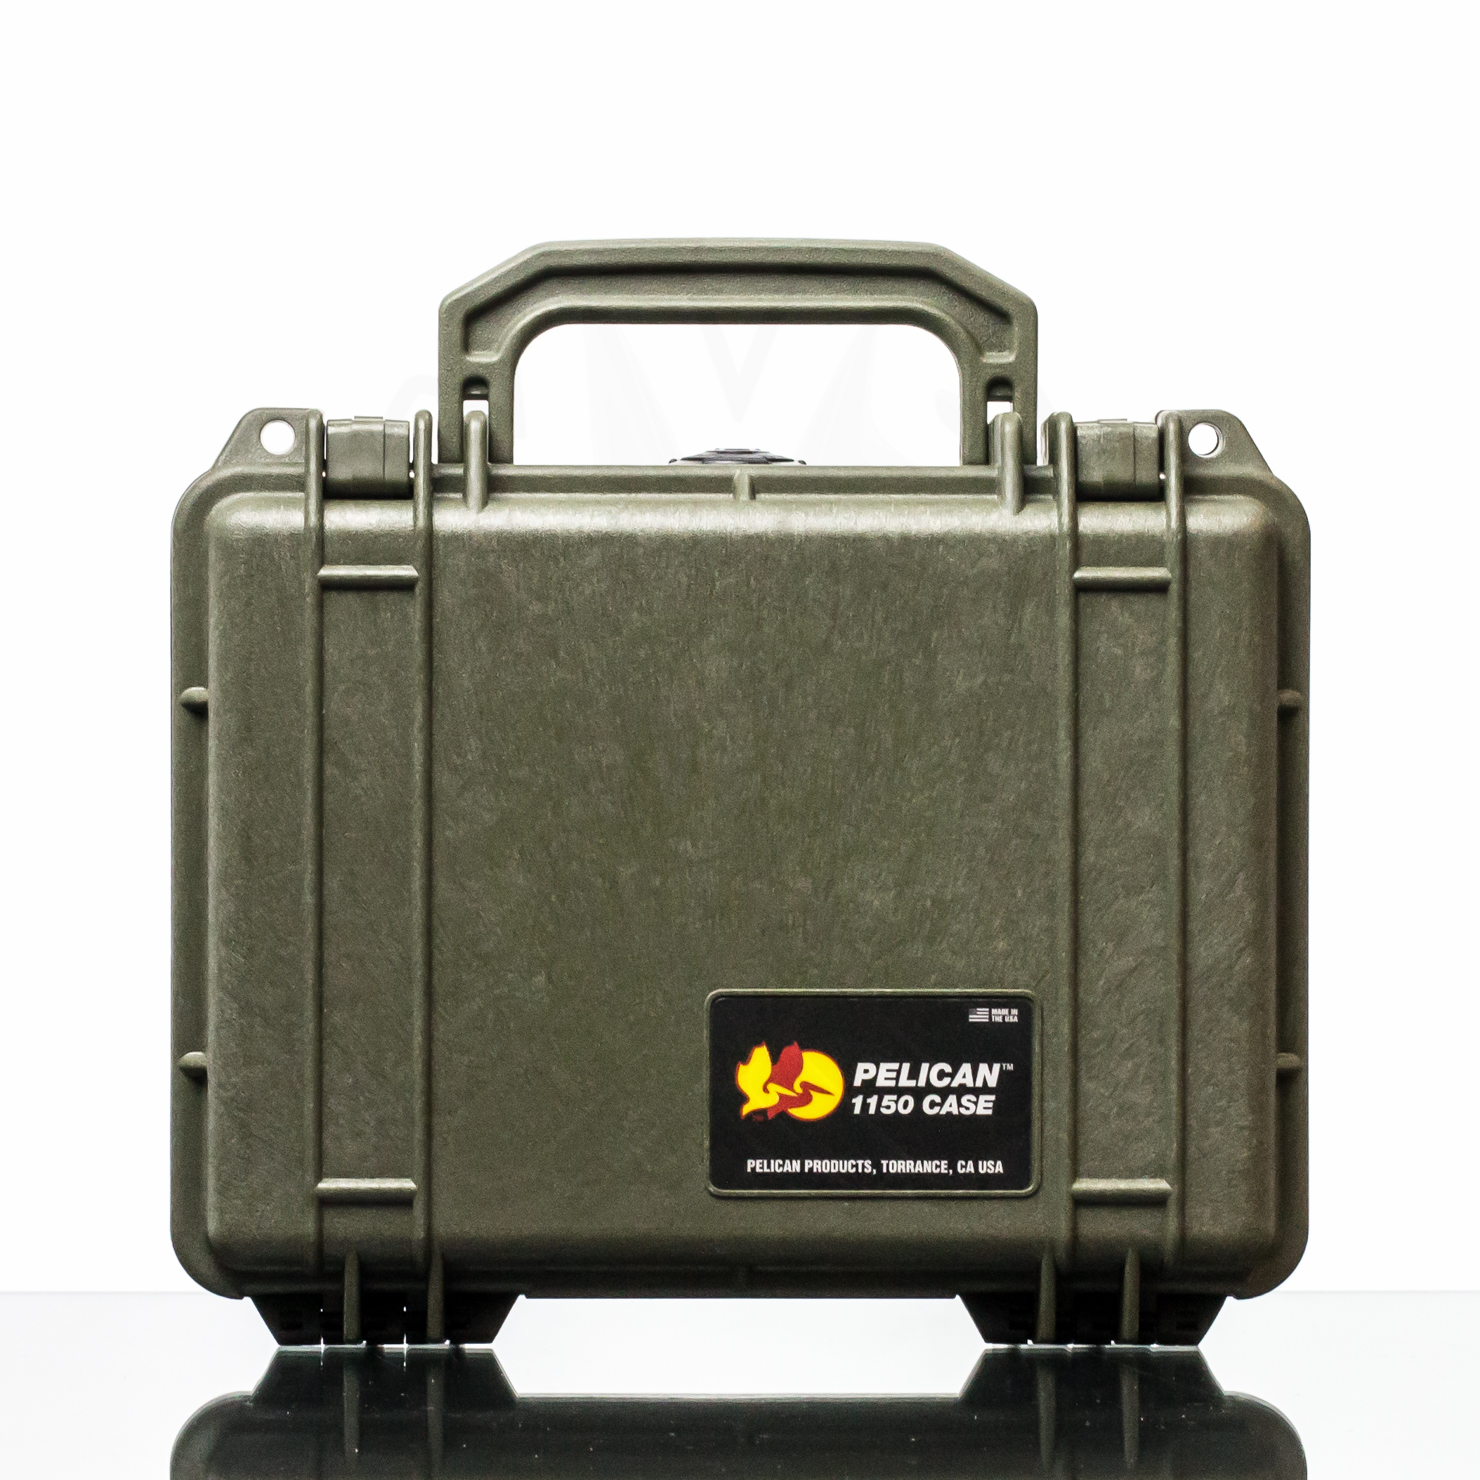 Pelican Case 1150 Od Green Nvs Glassworks Protective Cases